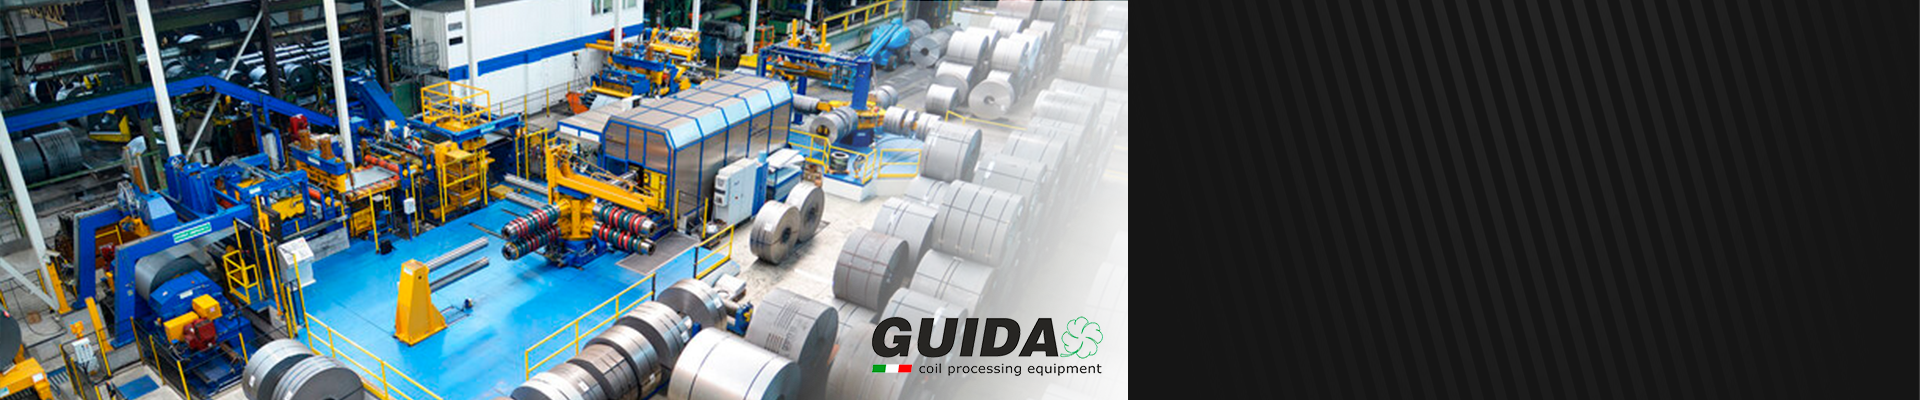 Guida, Manufacturing of leveling and packaging equipment.